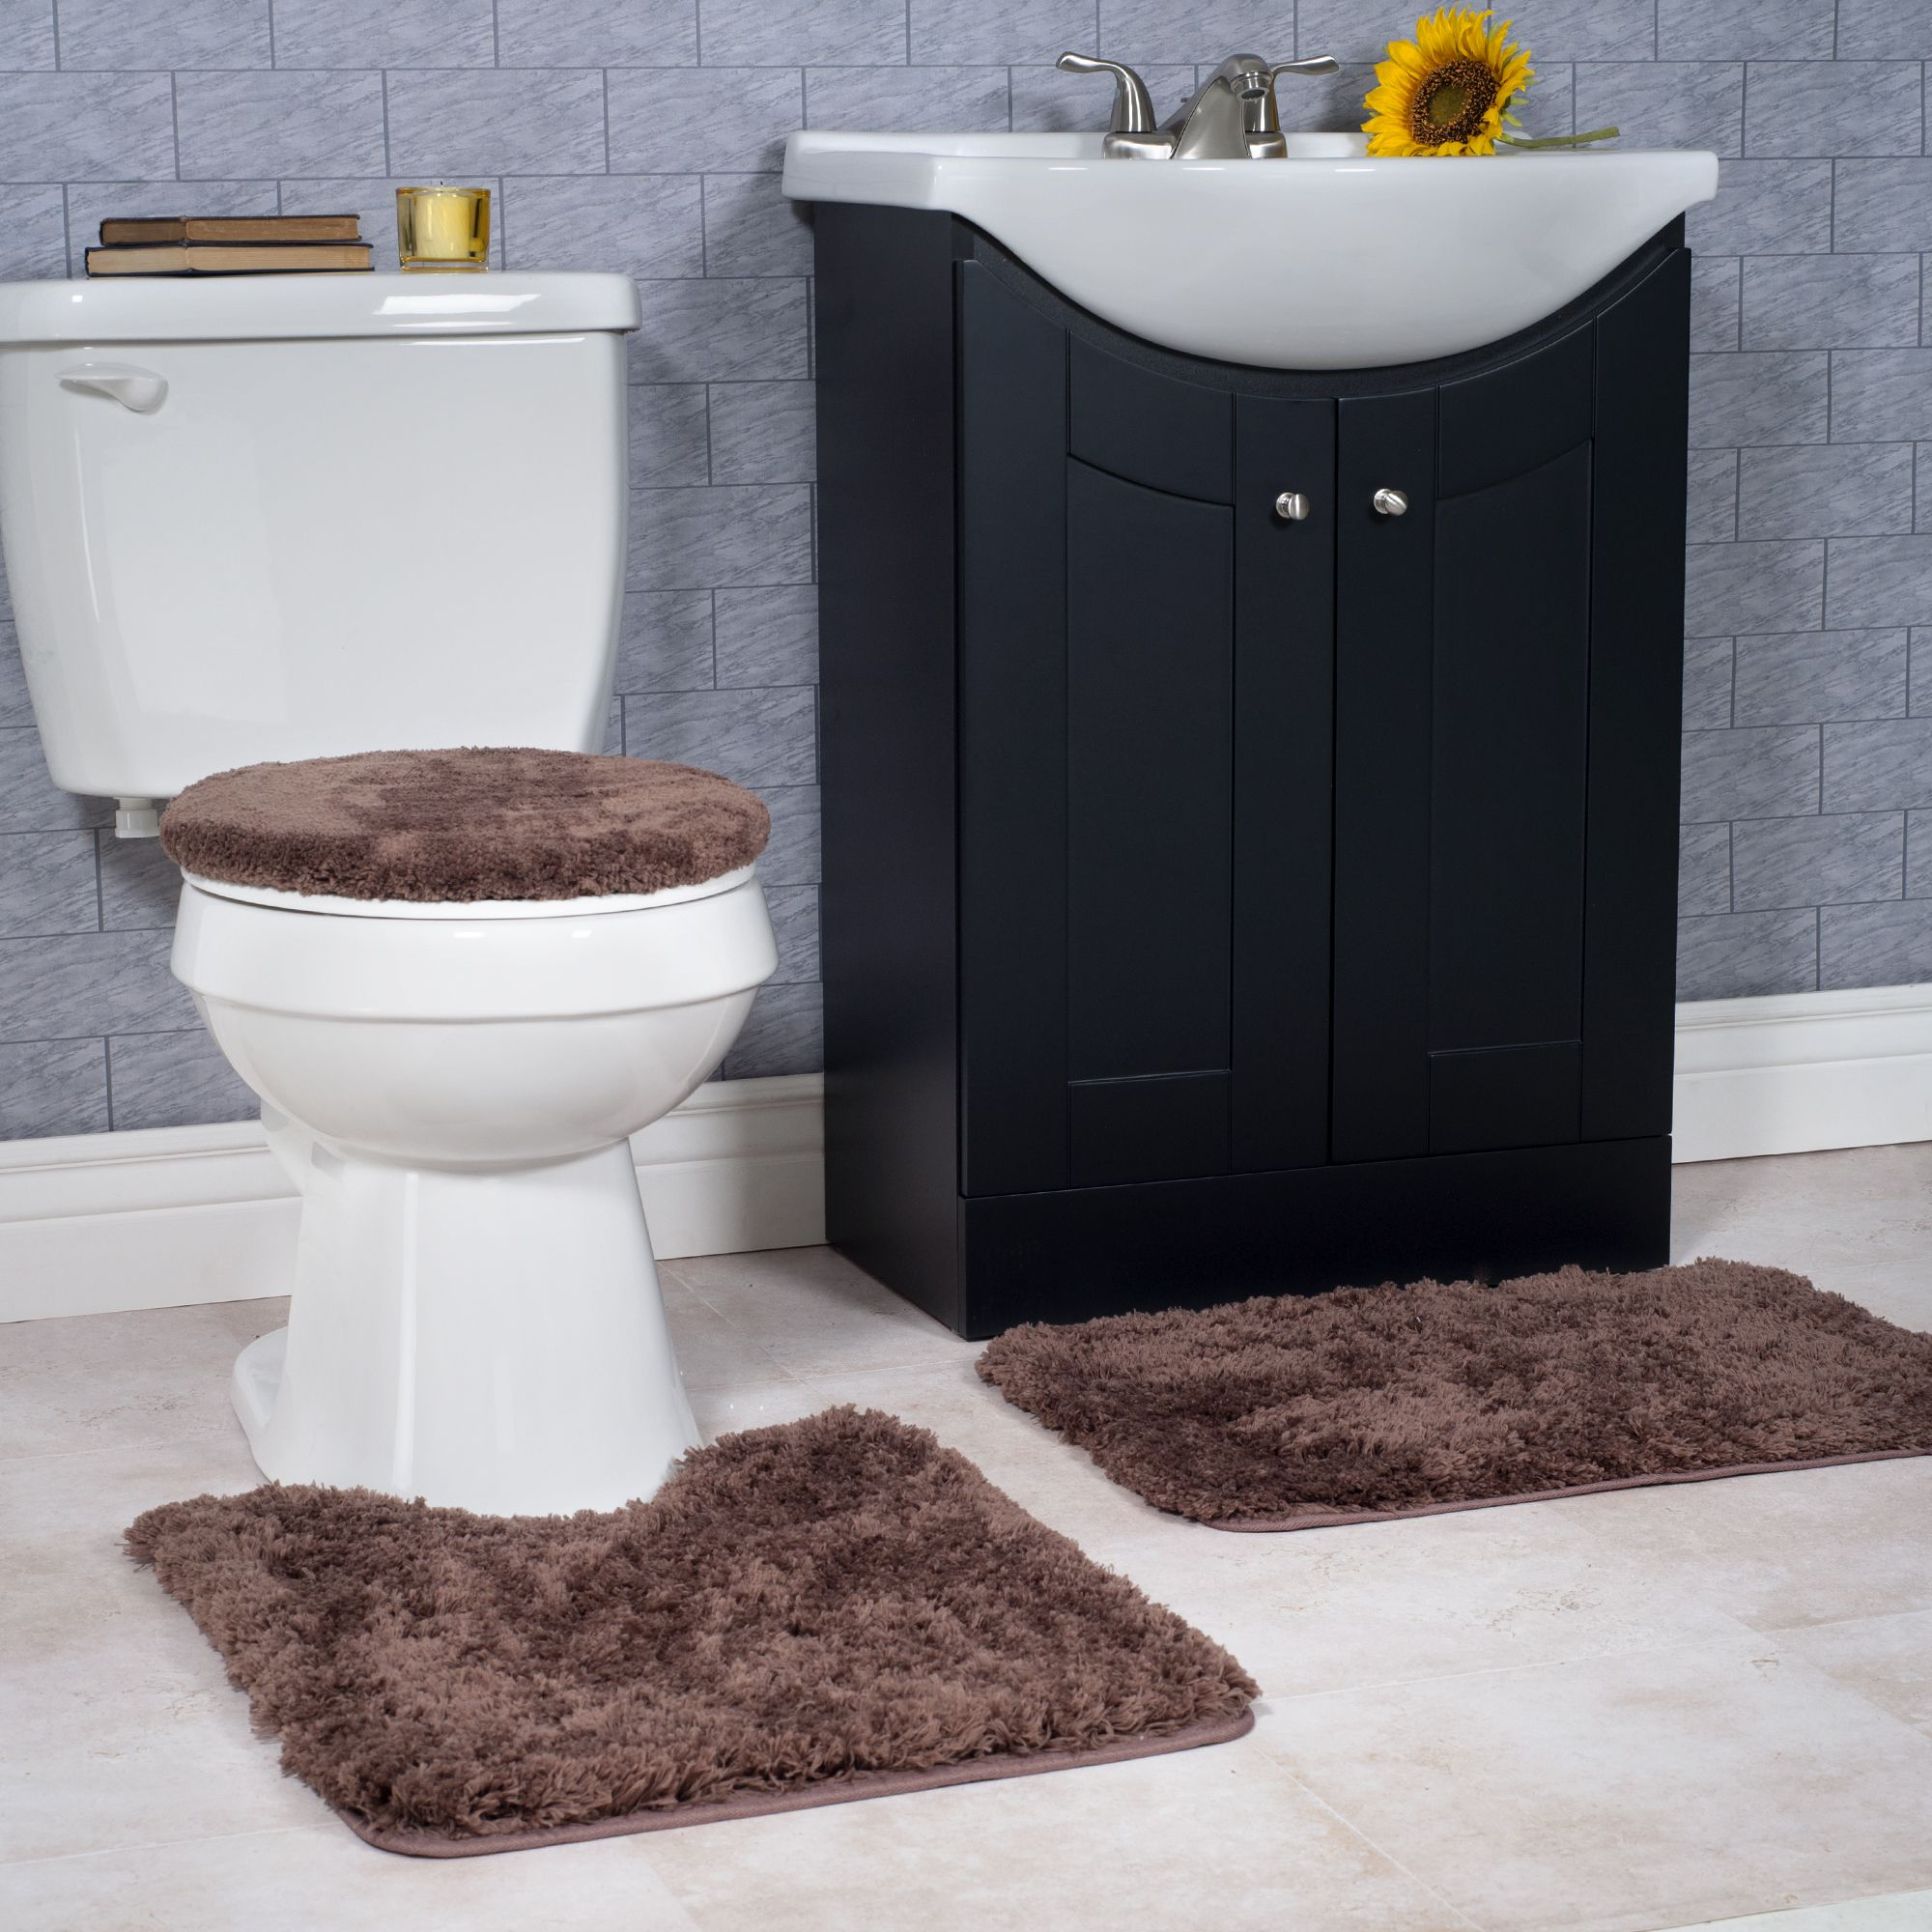 Kmart Deals On Furniture Toys Clothes Tools Tablets Ideas - White plush bathroom rugs for bathroom decorating ideas